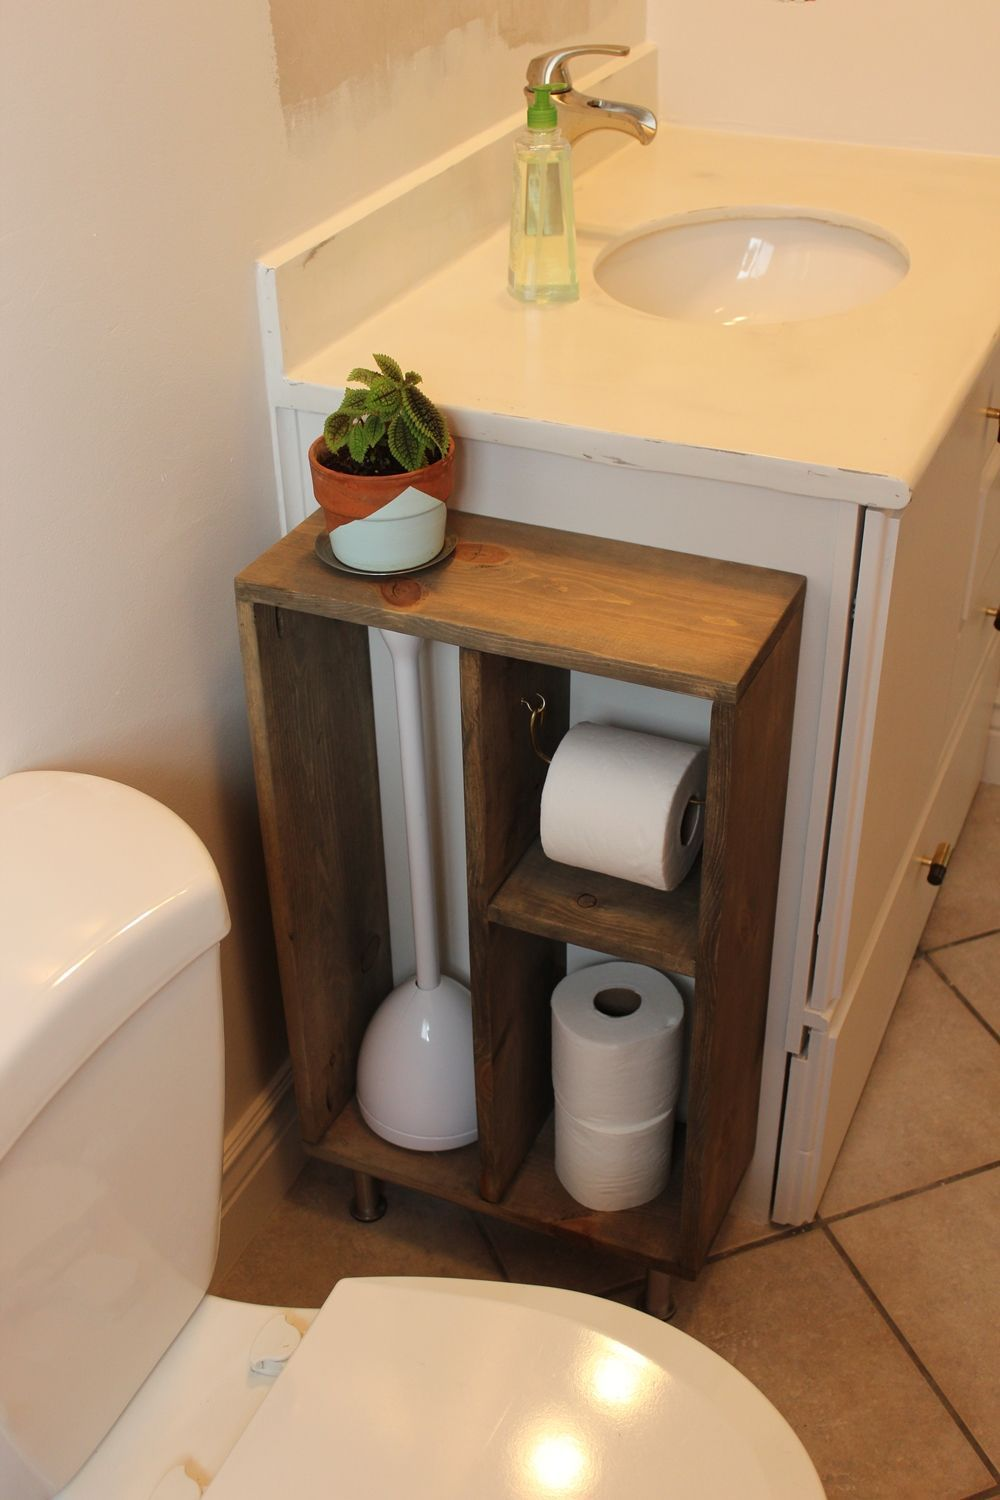 25 Best Toilet Paper Holder Ideas And Designs For 2019